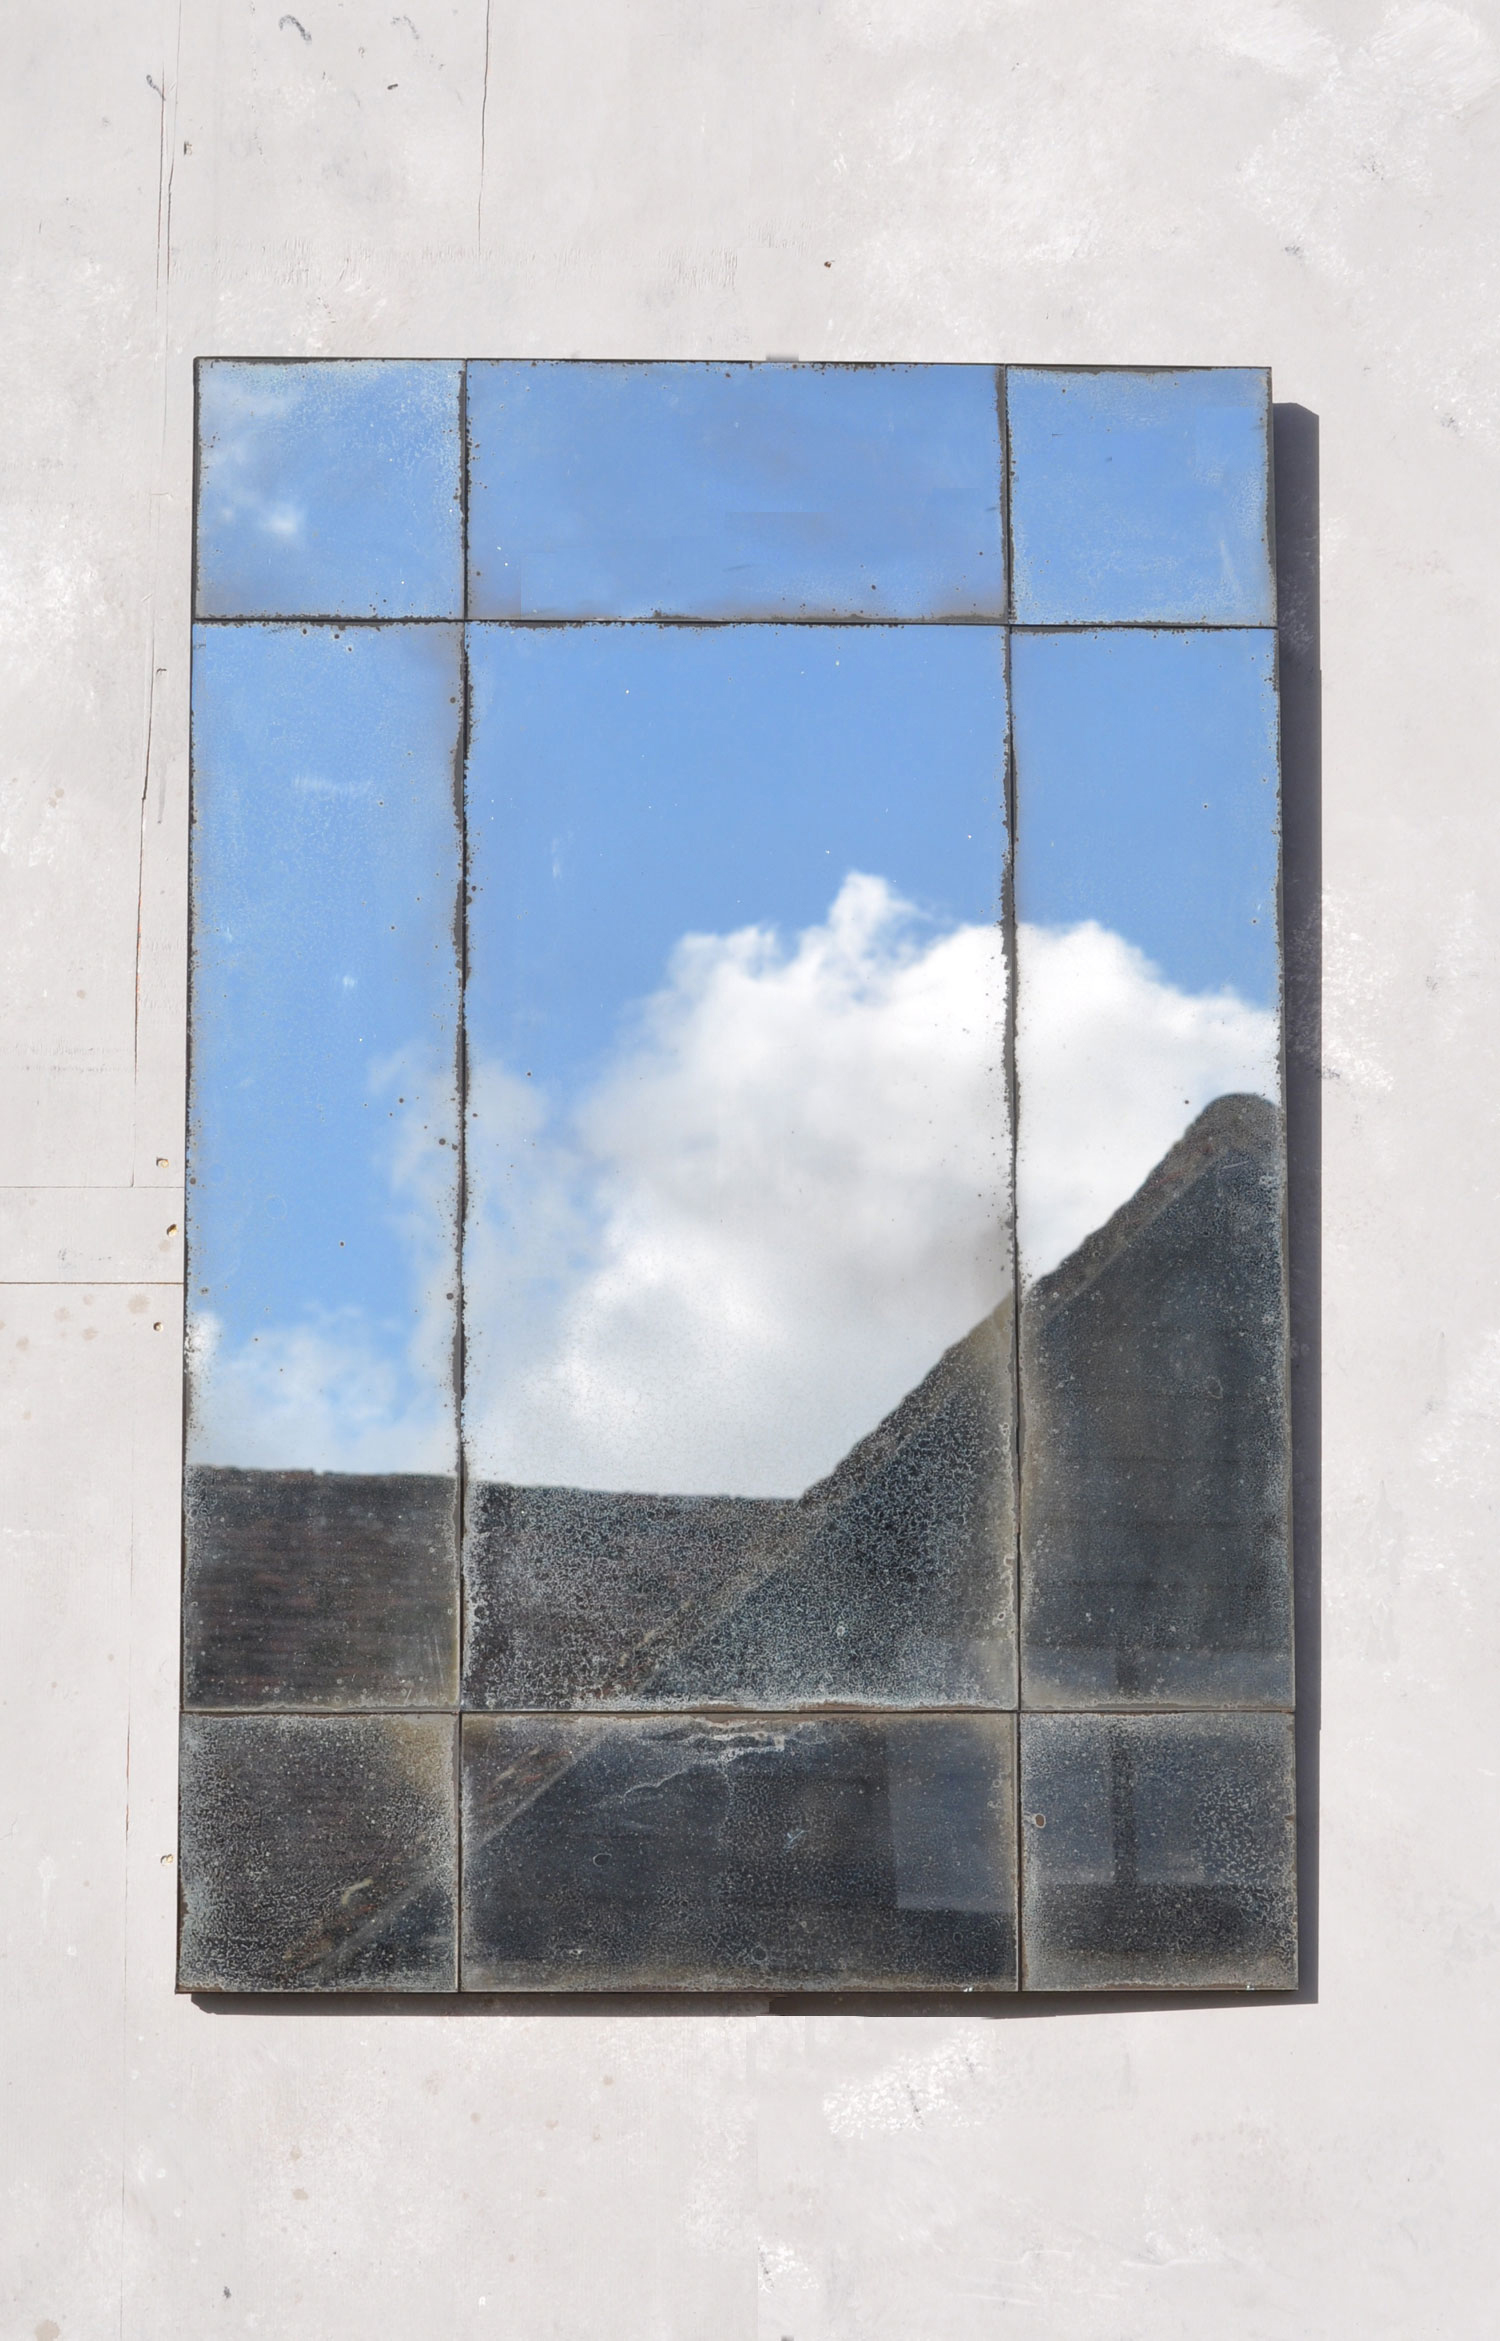 Verre Eglomise Art Deco Style Aged Speckled Mirror Home Barn Vintage